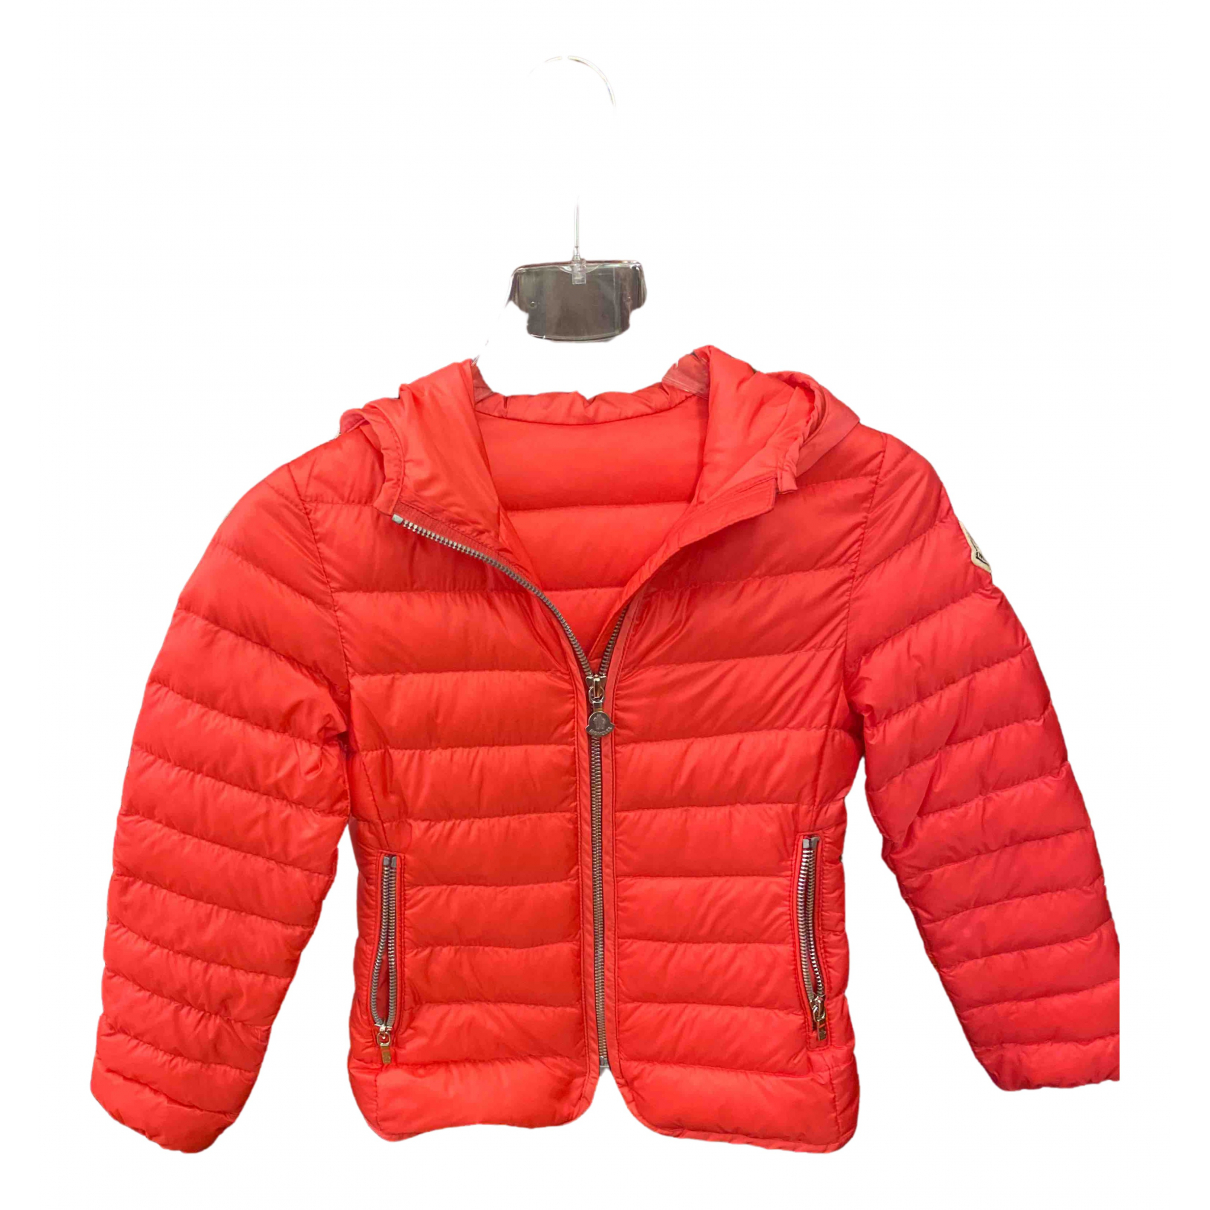 Moncler Classic Red jacket & coat for Kids 6 years - up to 114cm FR